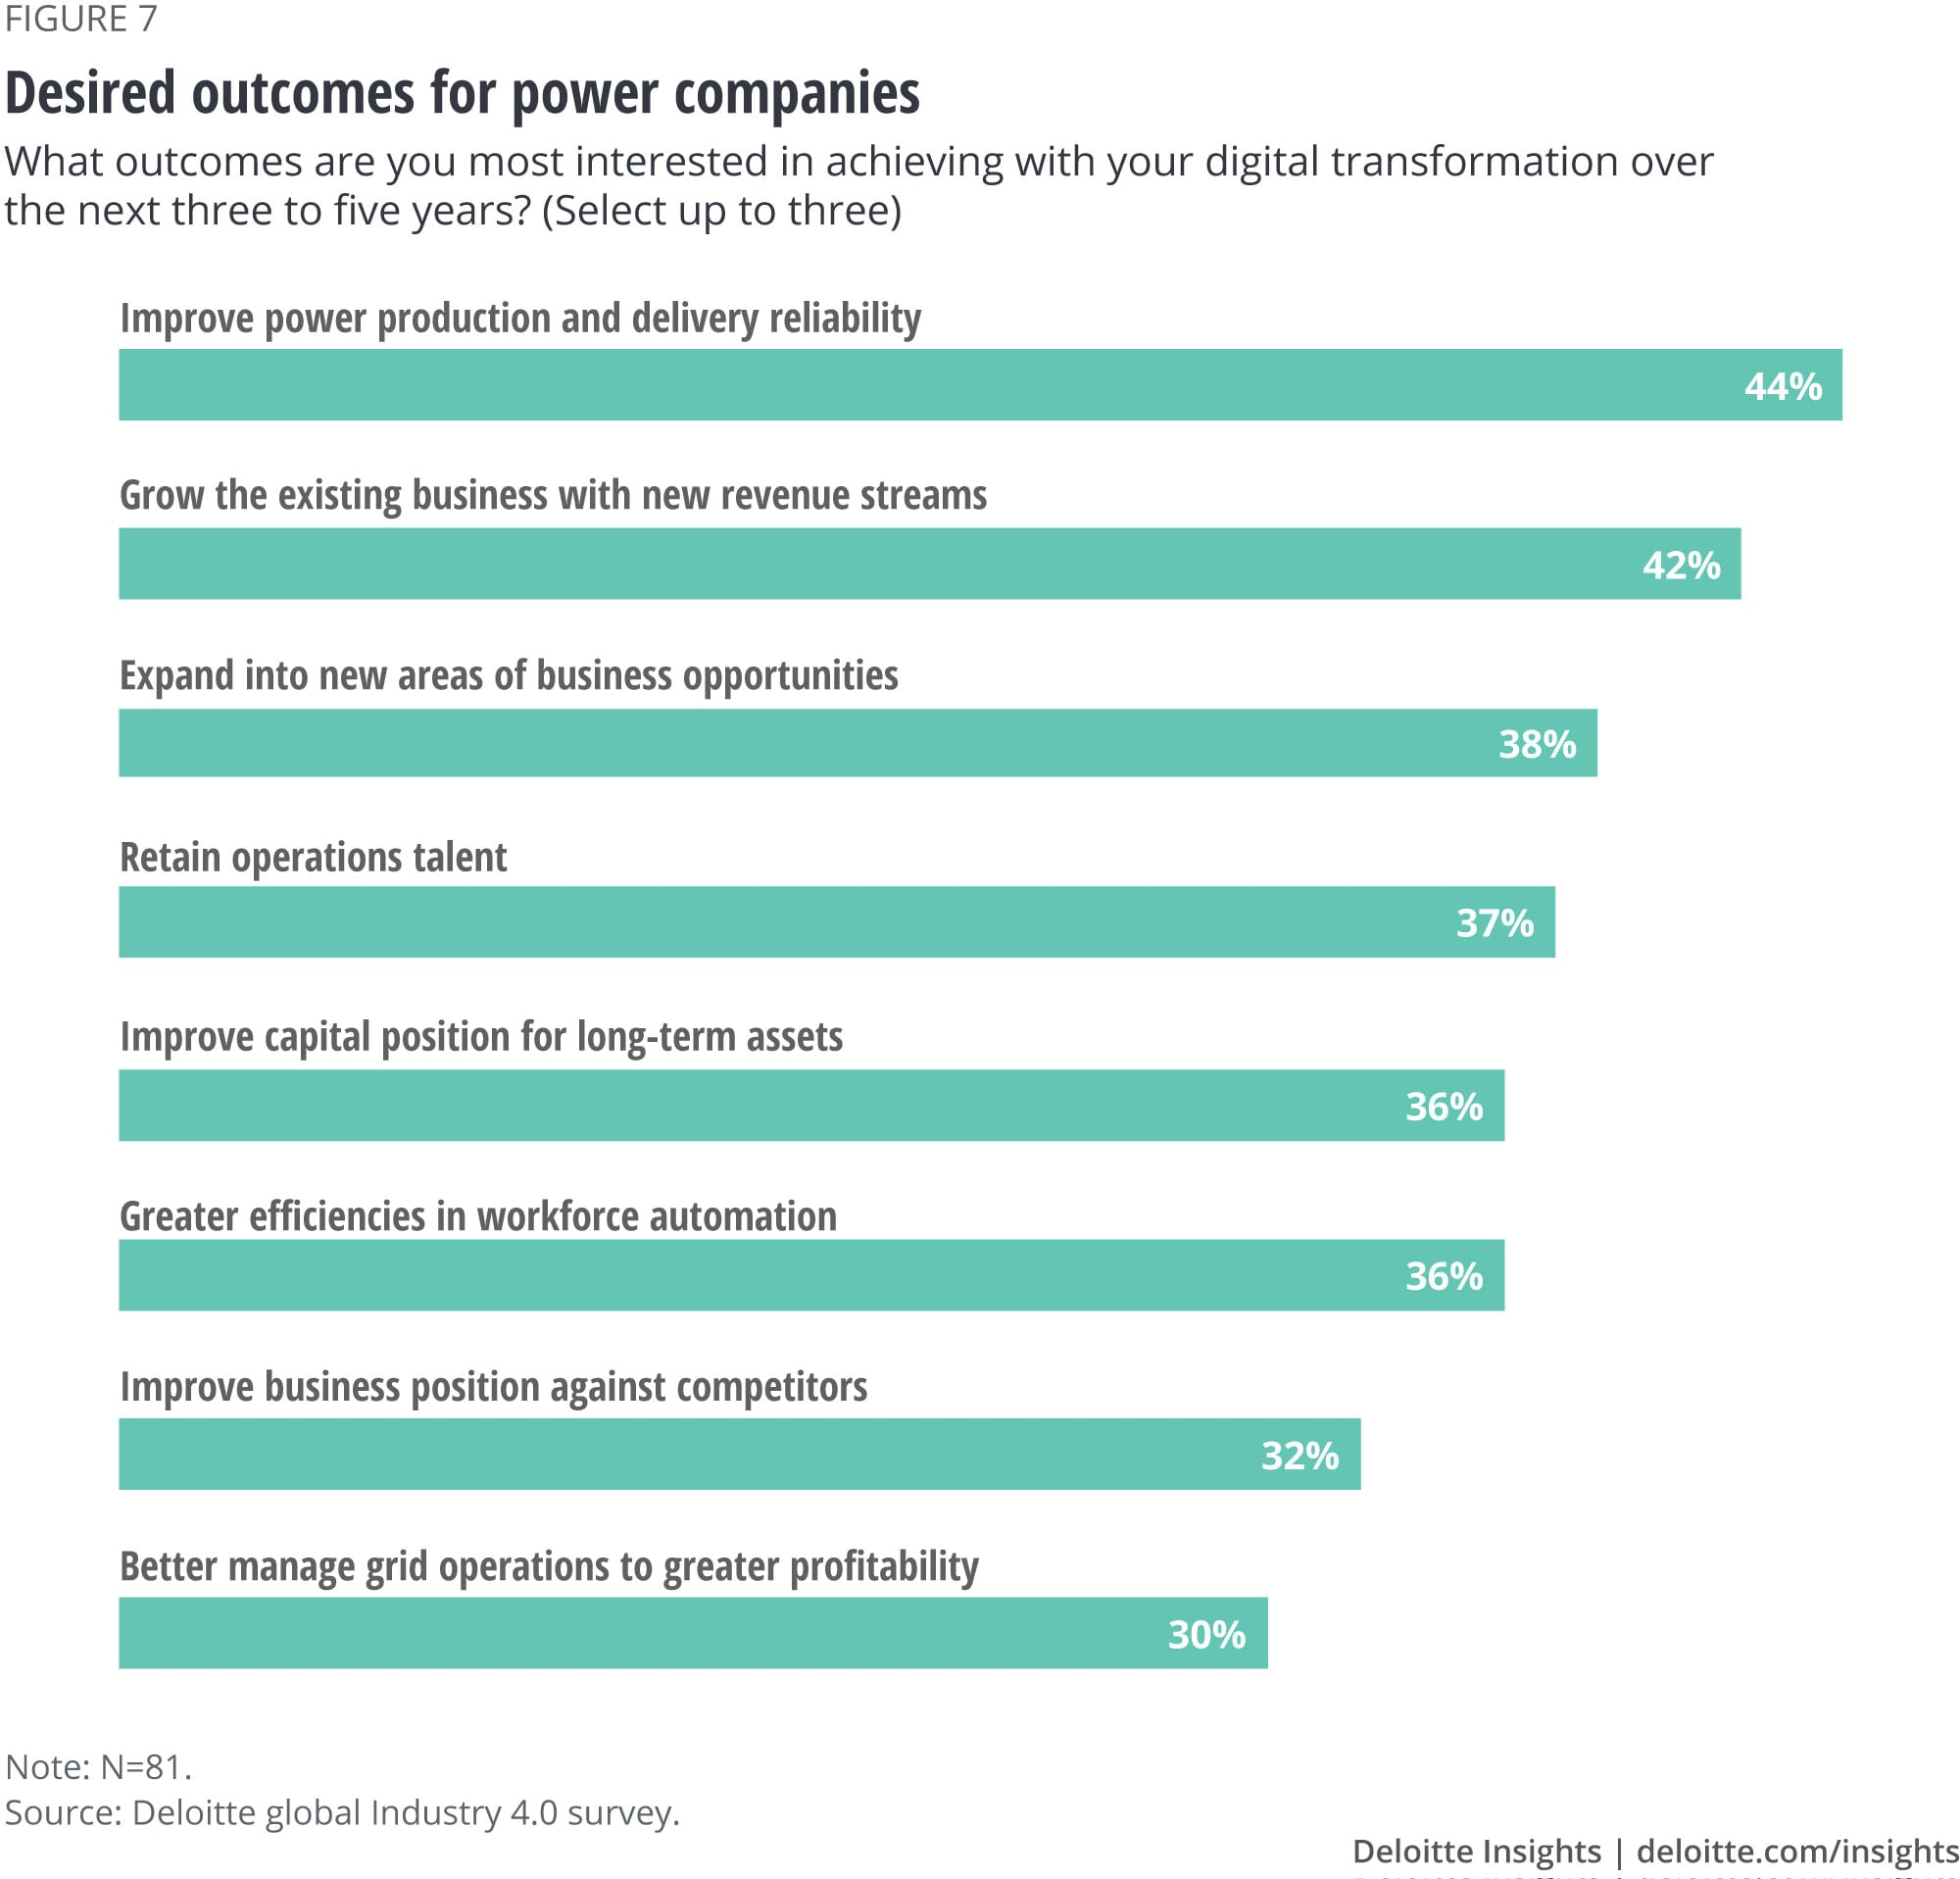 Desired outcomes for power companies